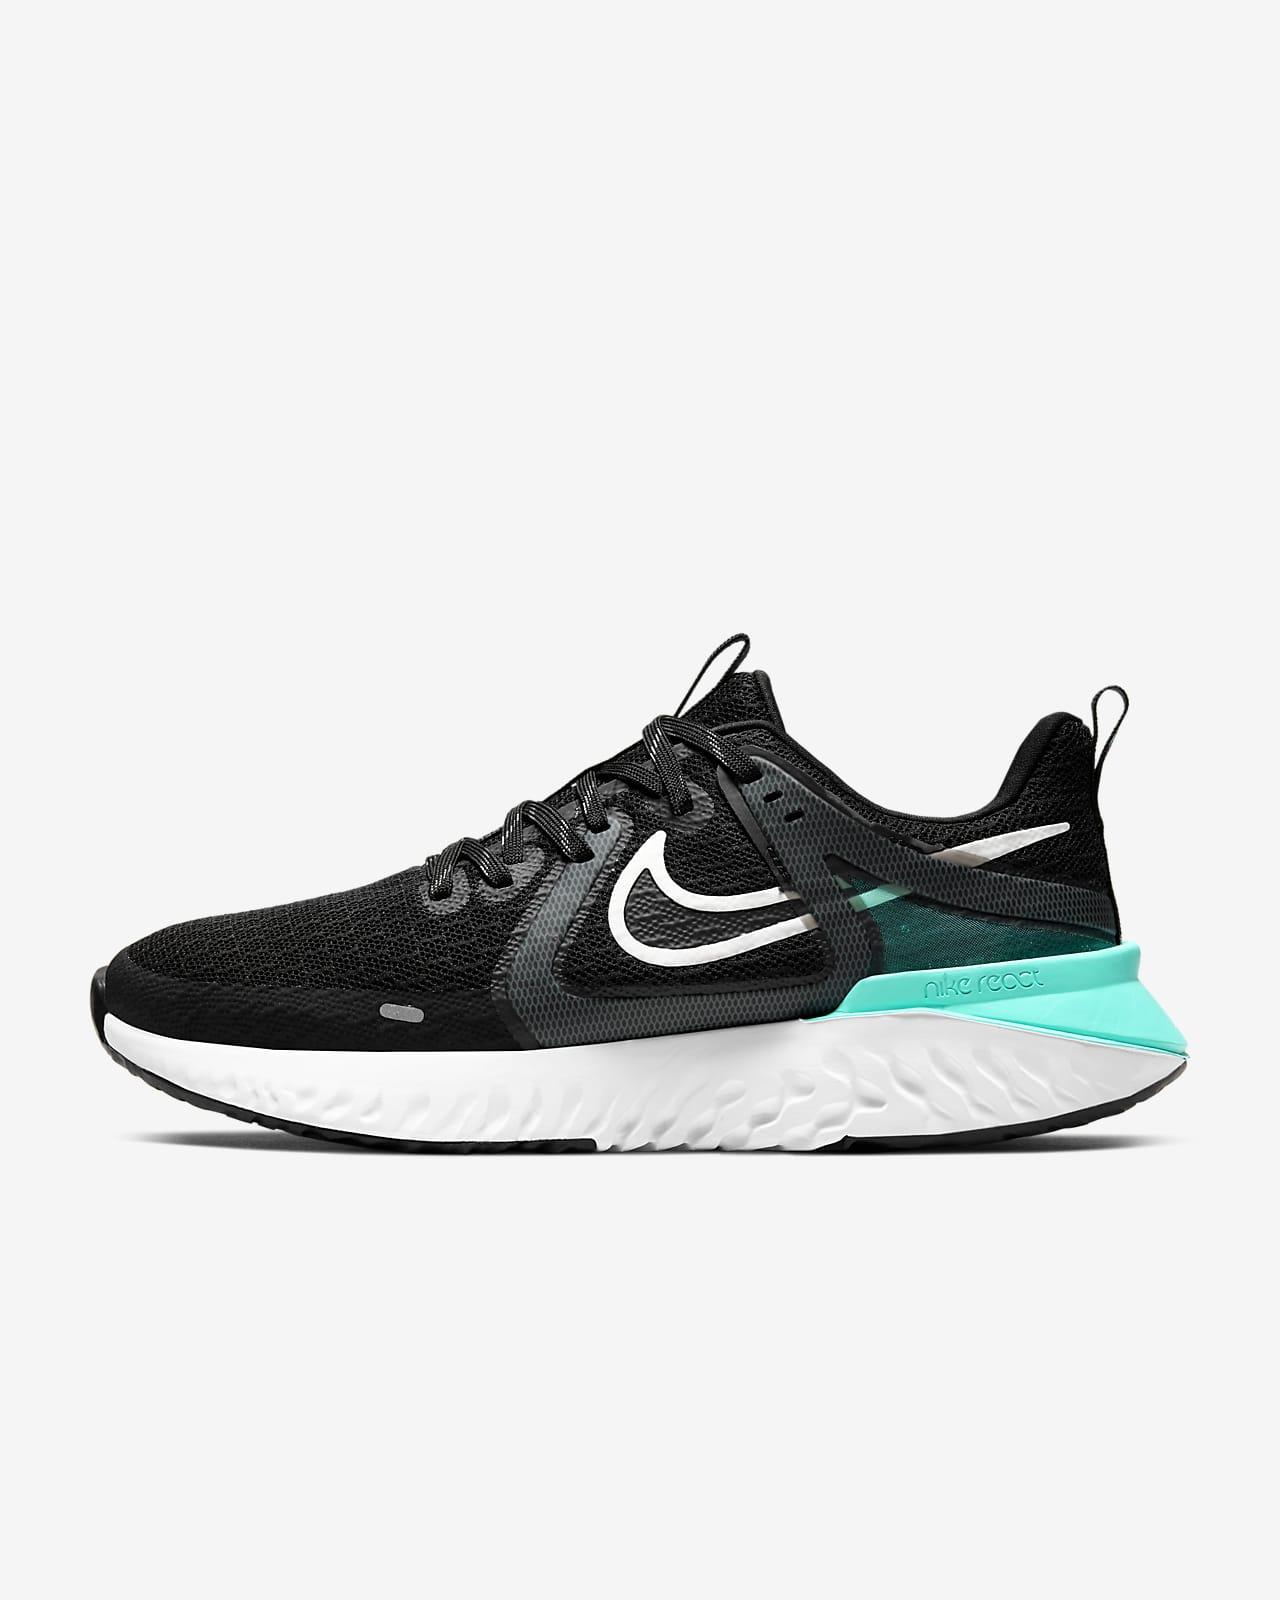 Nike Legend React 2 Women's Running Shoe